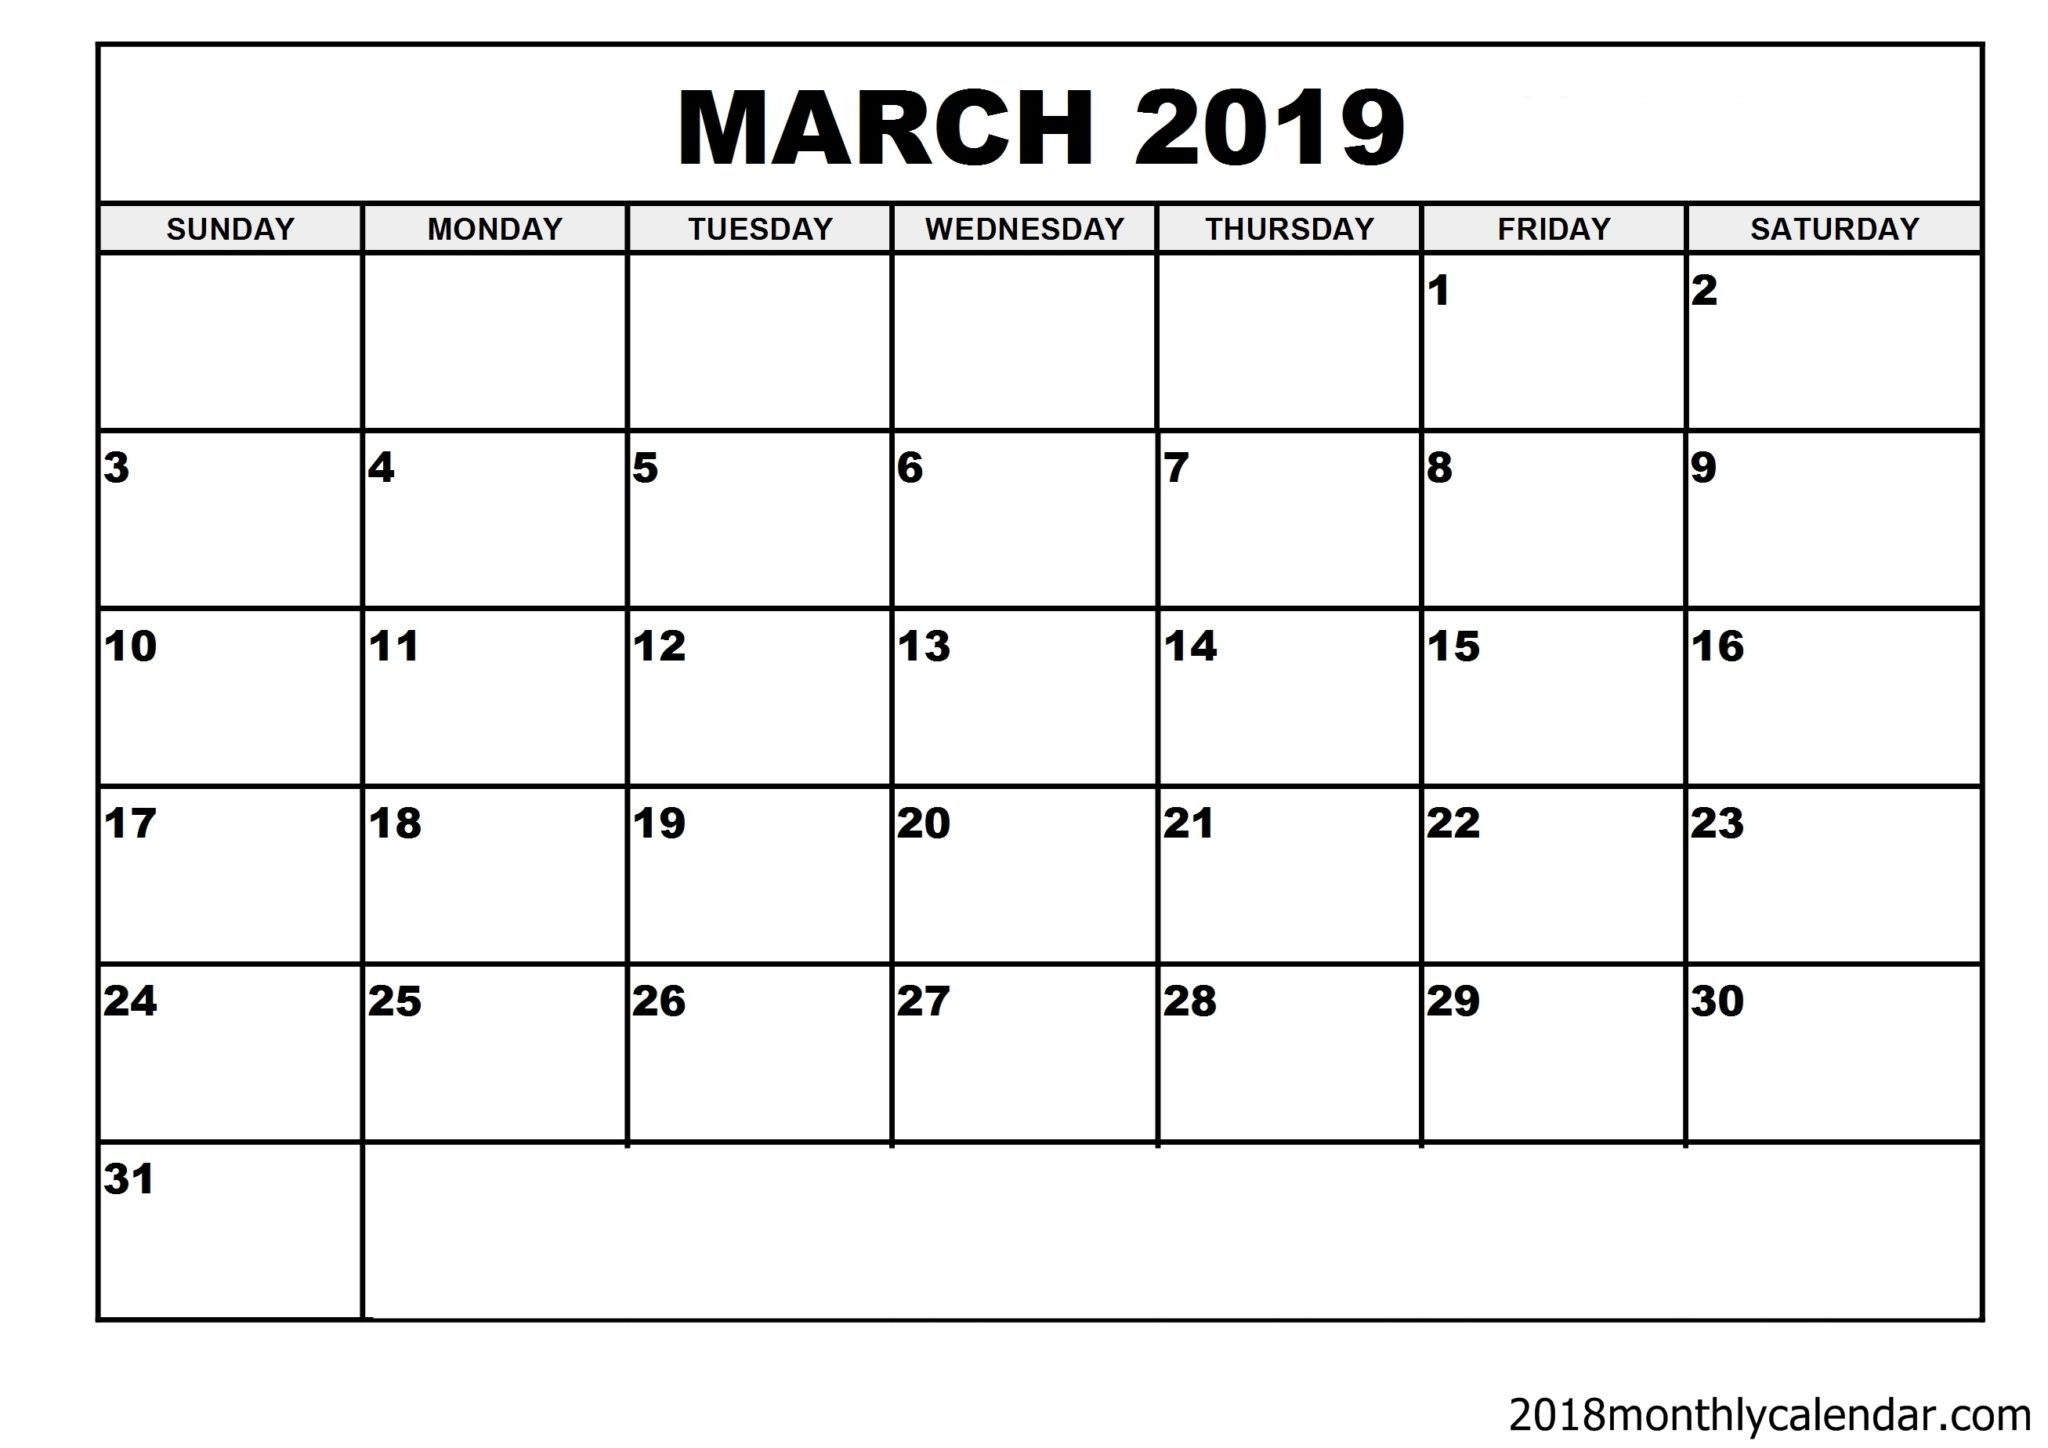 Download March 2019 Calendar – Blank Template - Editable Calendar pertaining to Blank Printable Calendar By Month With Notes